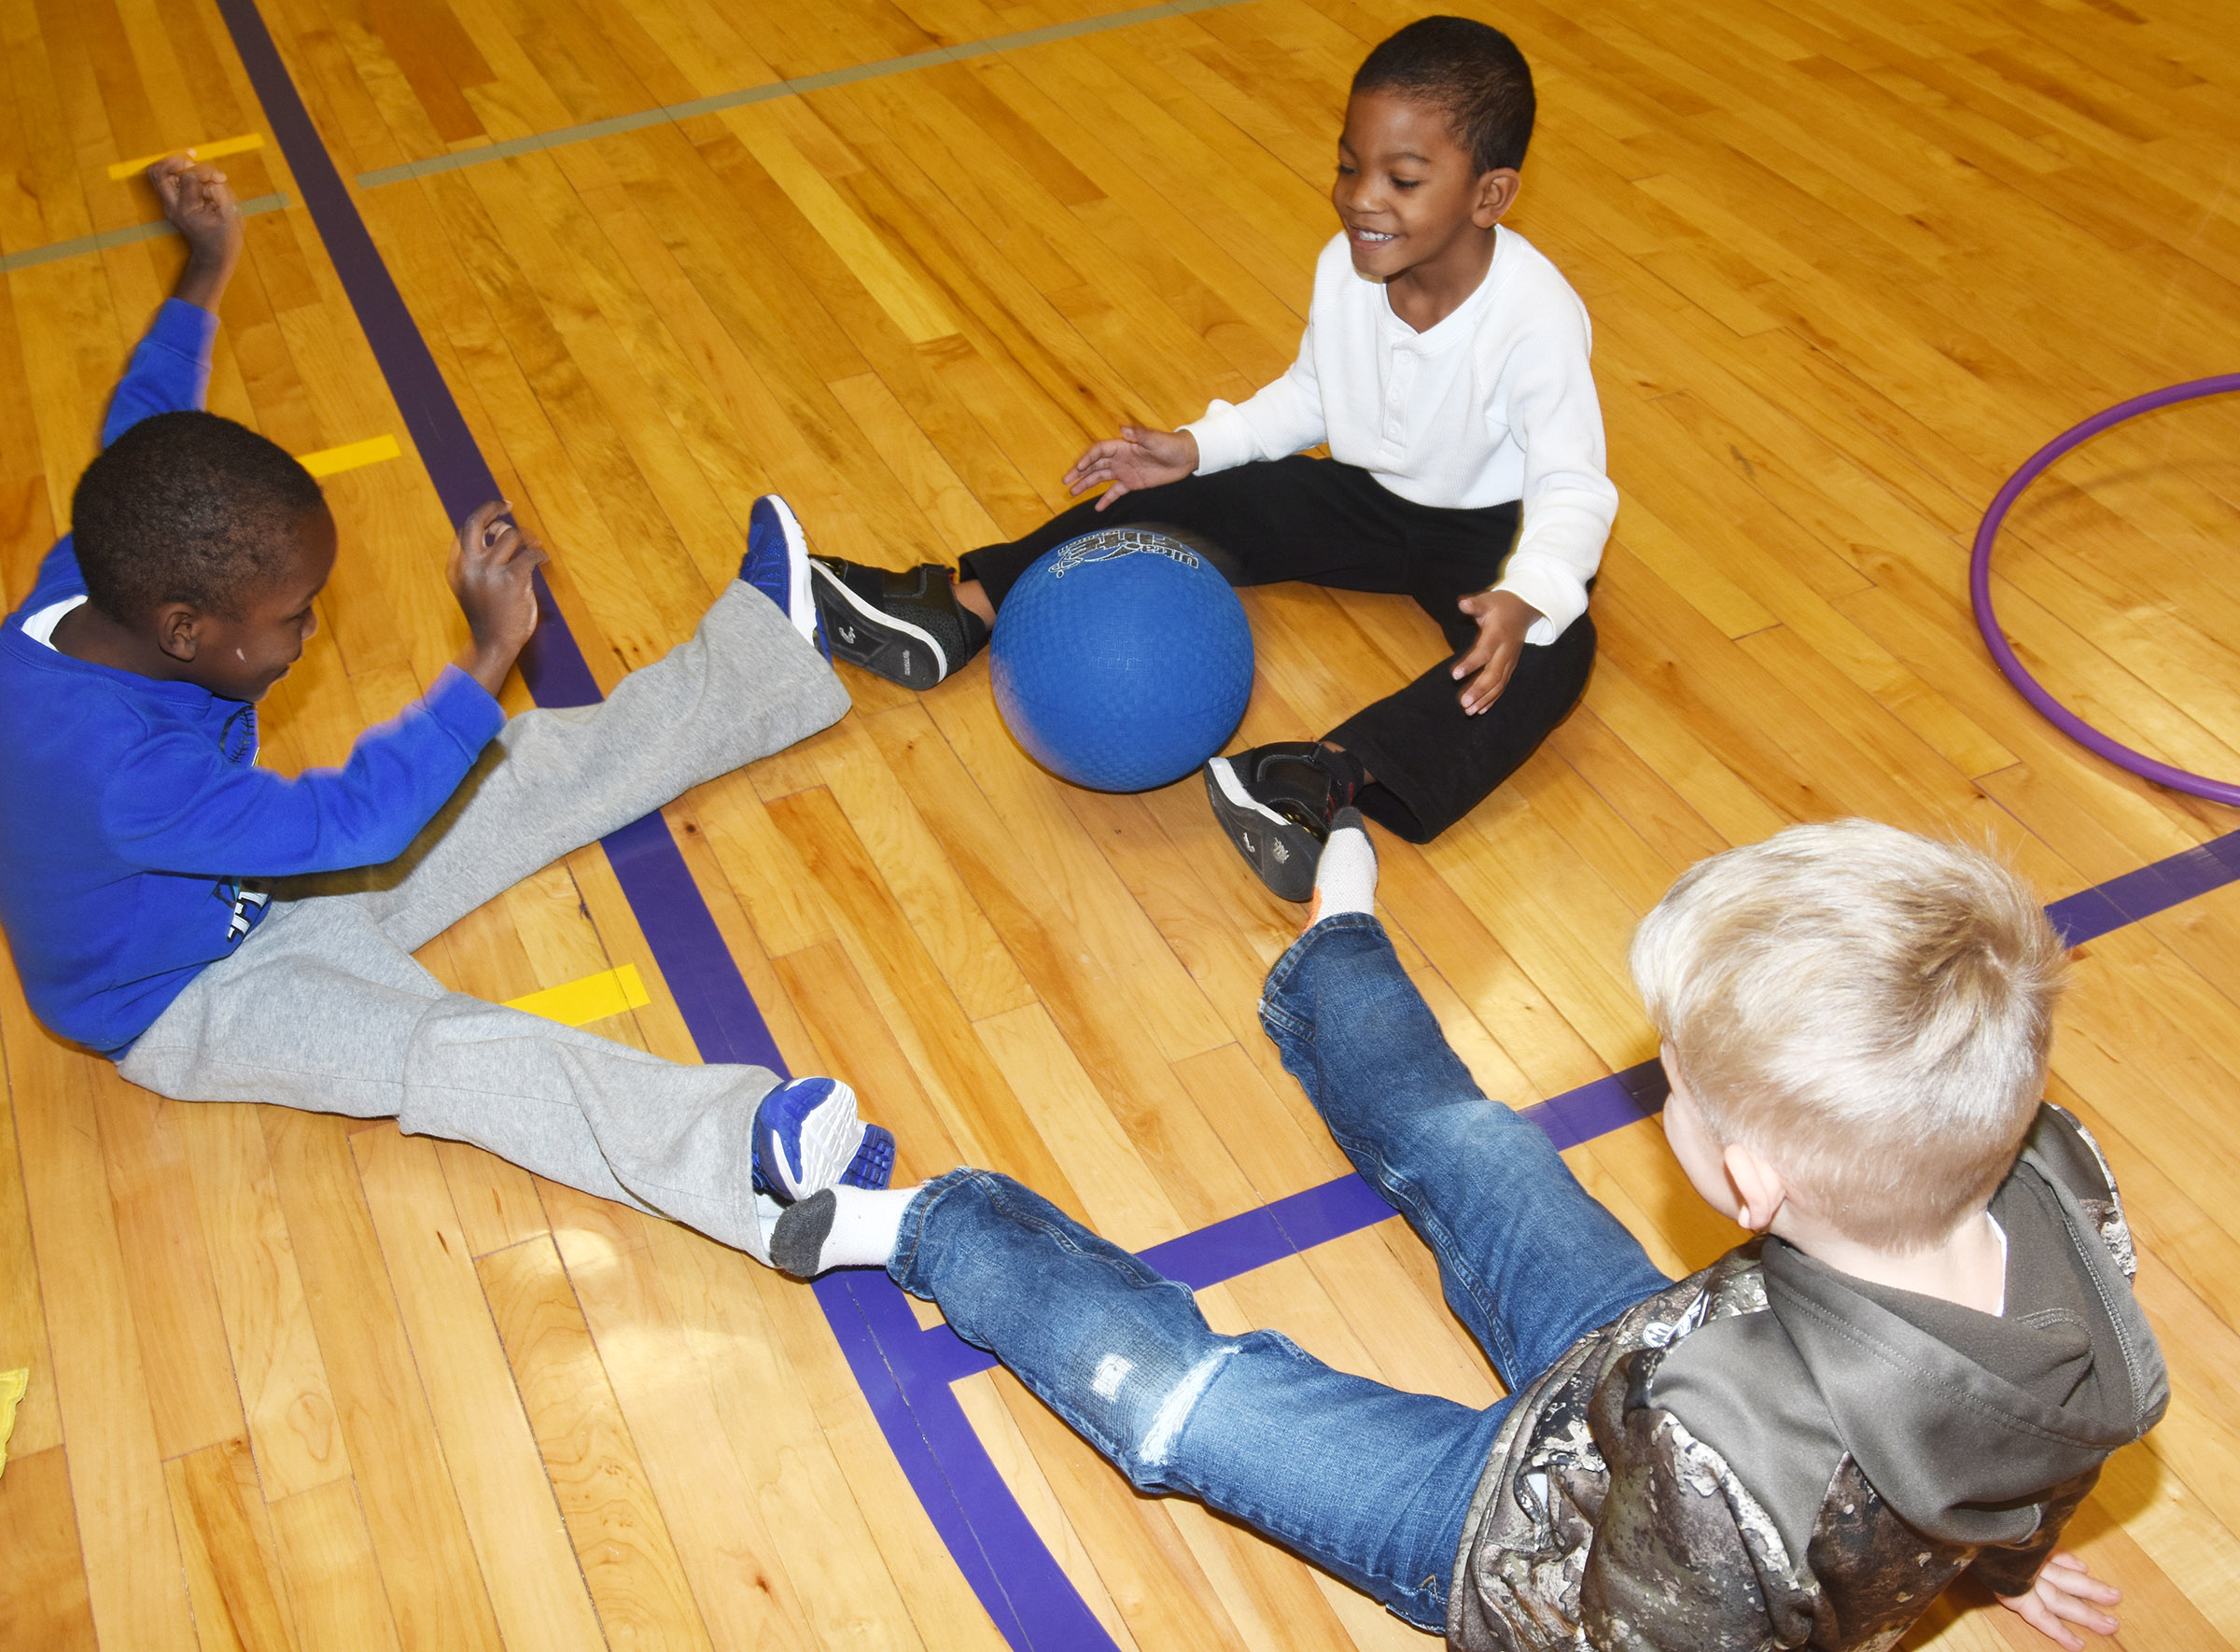 From left, CES preschool students Xavien Smith, Rakim Dunn and Hoyt Davis have fun together playing with a kickball.